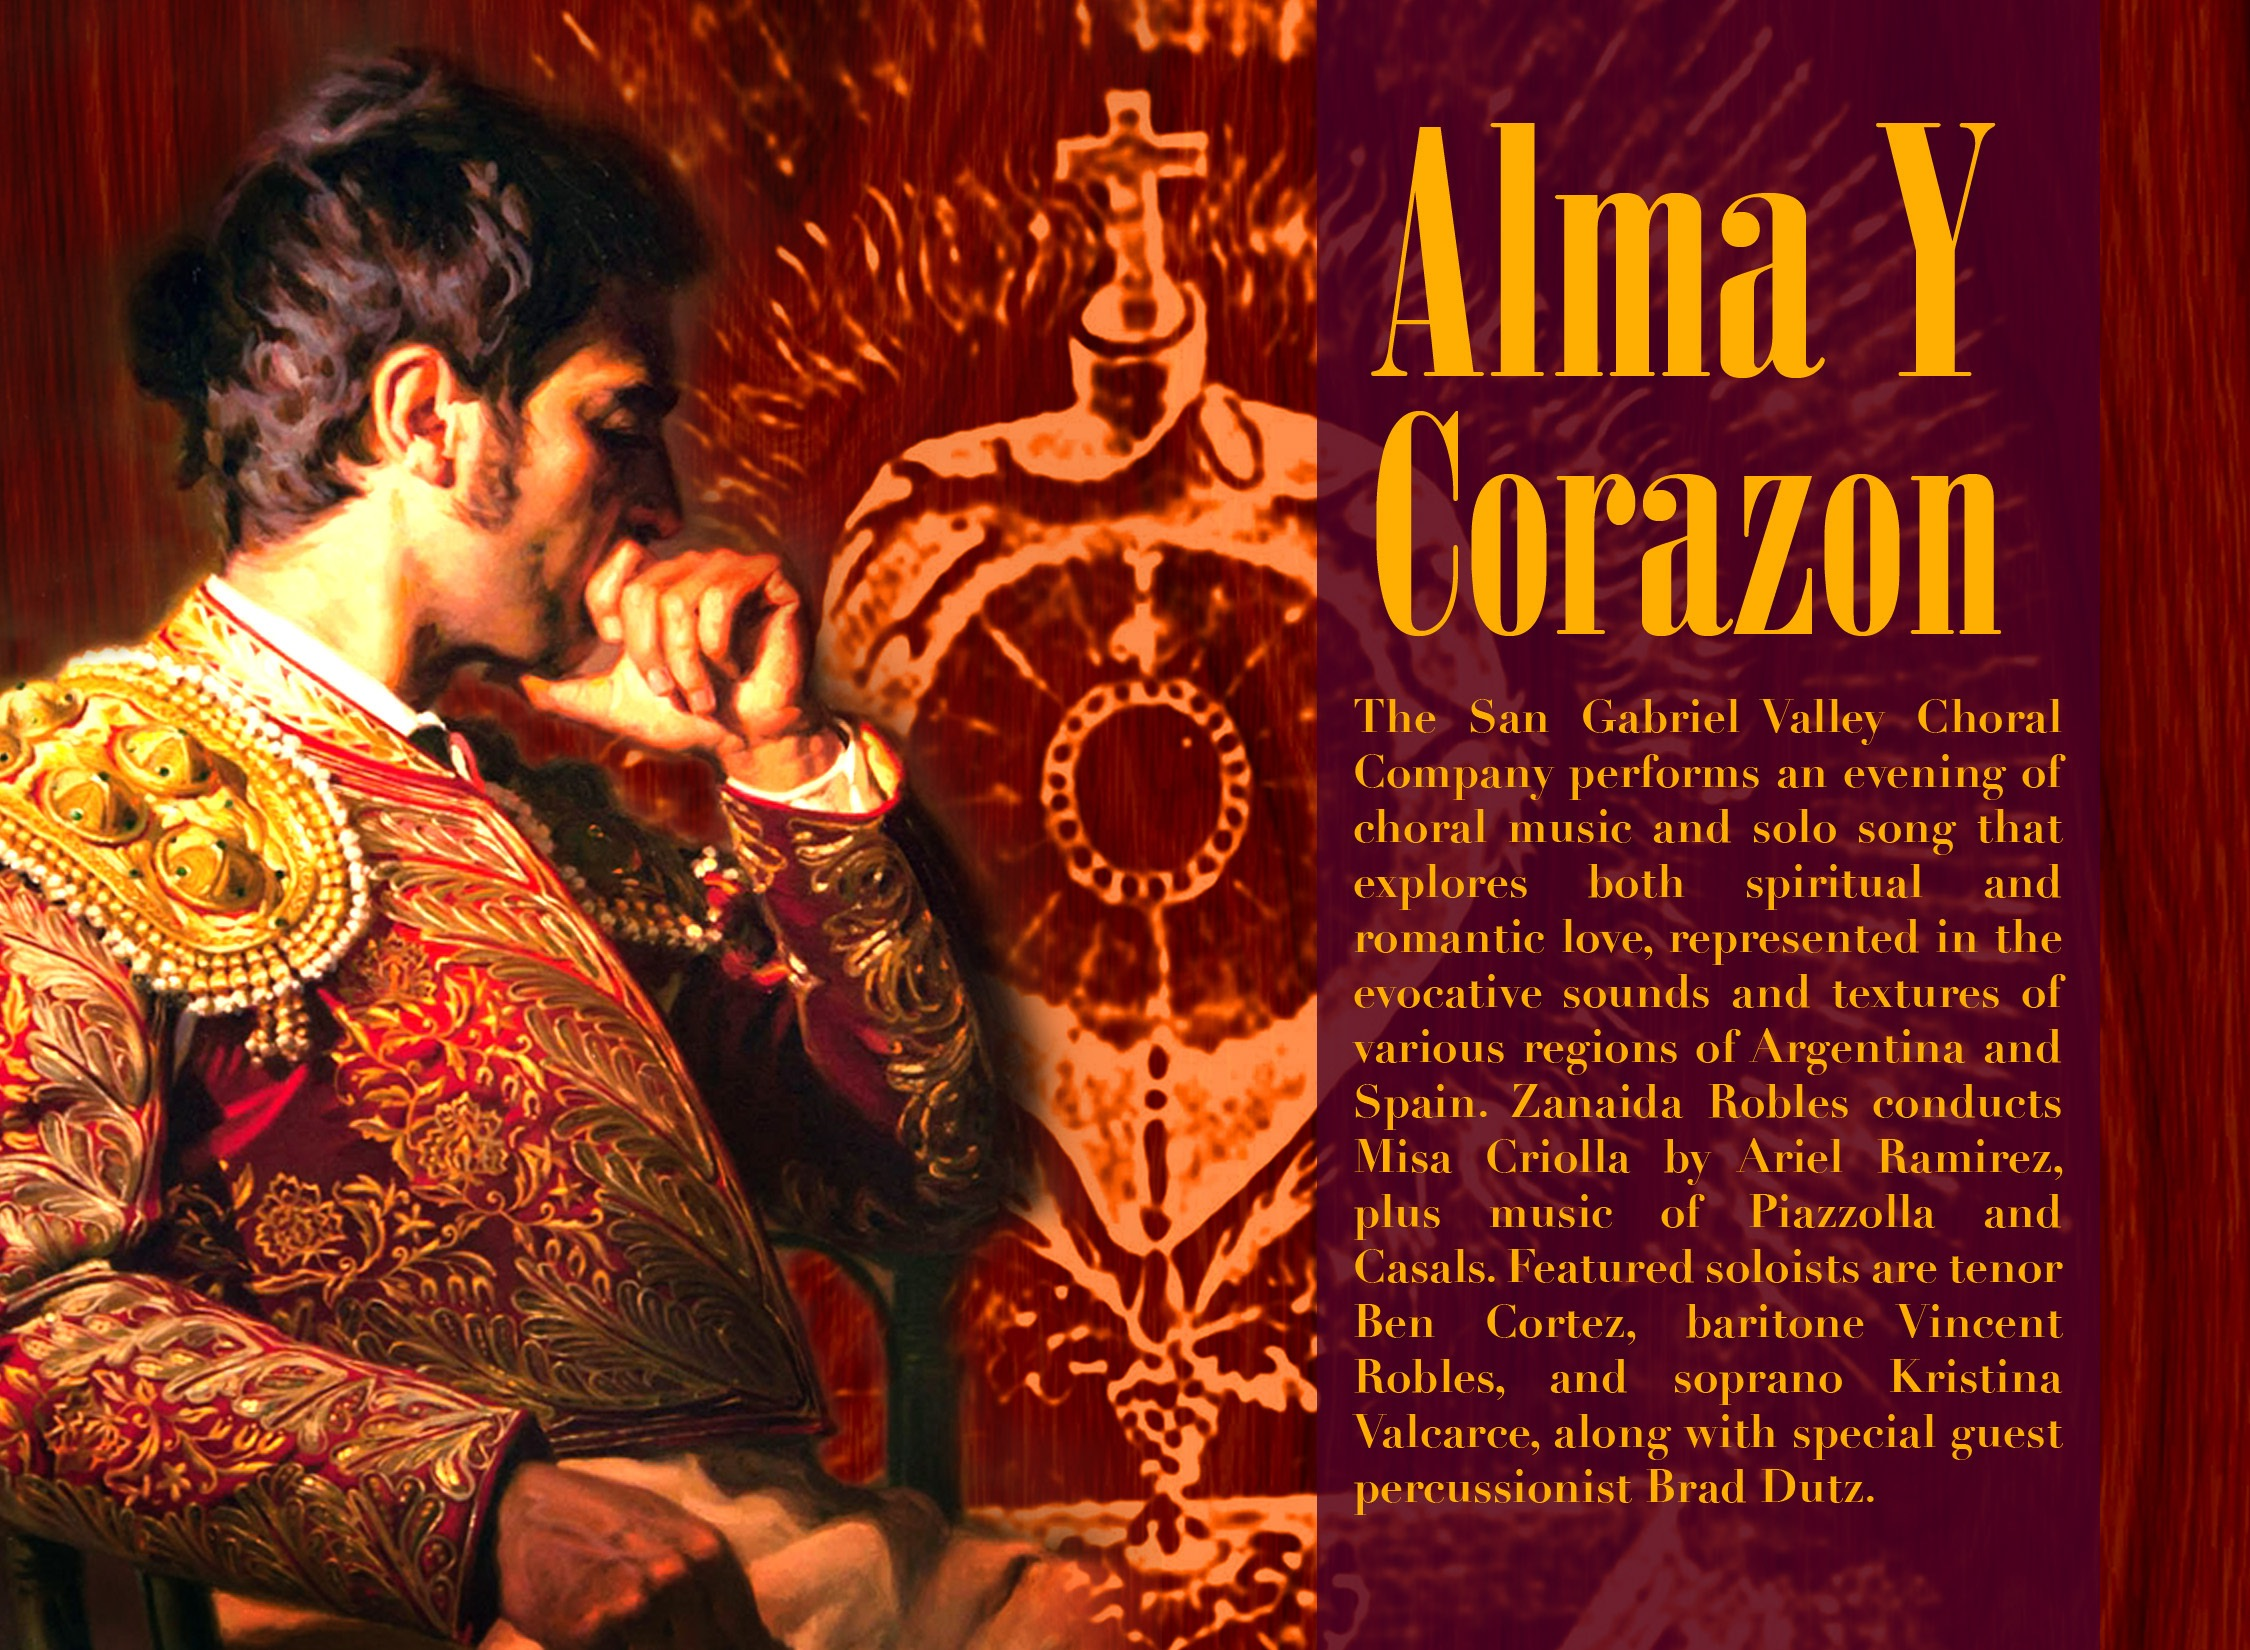 This year I took a position as a Soprano Soloist and Section Leader with a really fun group called the San Gabriel Valley Choral Company. I'm about to perform in my first concert with them, Alma y Corazon. It will be on April 5th at 7:30 pm at Monrovia Presbyterian Church under the direction of Zanaida Robles.  The Company will perform Ariel Ramirez's Misa Criolla, and I will be the soprano soloist on this piece. We'll also perform Casals' Eucarista and Piazzolla's Libertango. There will also be a set of Spanish language art songs, during which I'll be singing three pieces by the Argentine composer Ginastera. In addition, two other talented singers, tenor Benjamin Cortez and baritone Vincent Robles, will perform solos.  You can buy tickets online at sgvccsingers.org or by calling 626-253-7248. Season subscription and individual concert tickets are available. Advance ticket prices are $15 general admission, $10 Student with ID and Seniors 65+ and $5 children under 12. Tickets purchased at the door will cost $20 general admission, $12 Student with ID and Seniors 65+ and $5 for children under 12.  I hope to see you there!